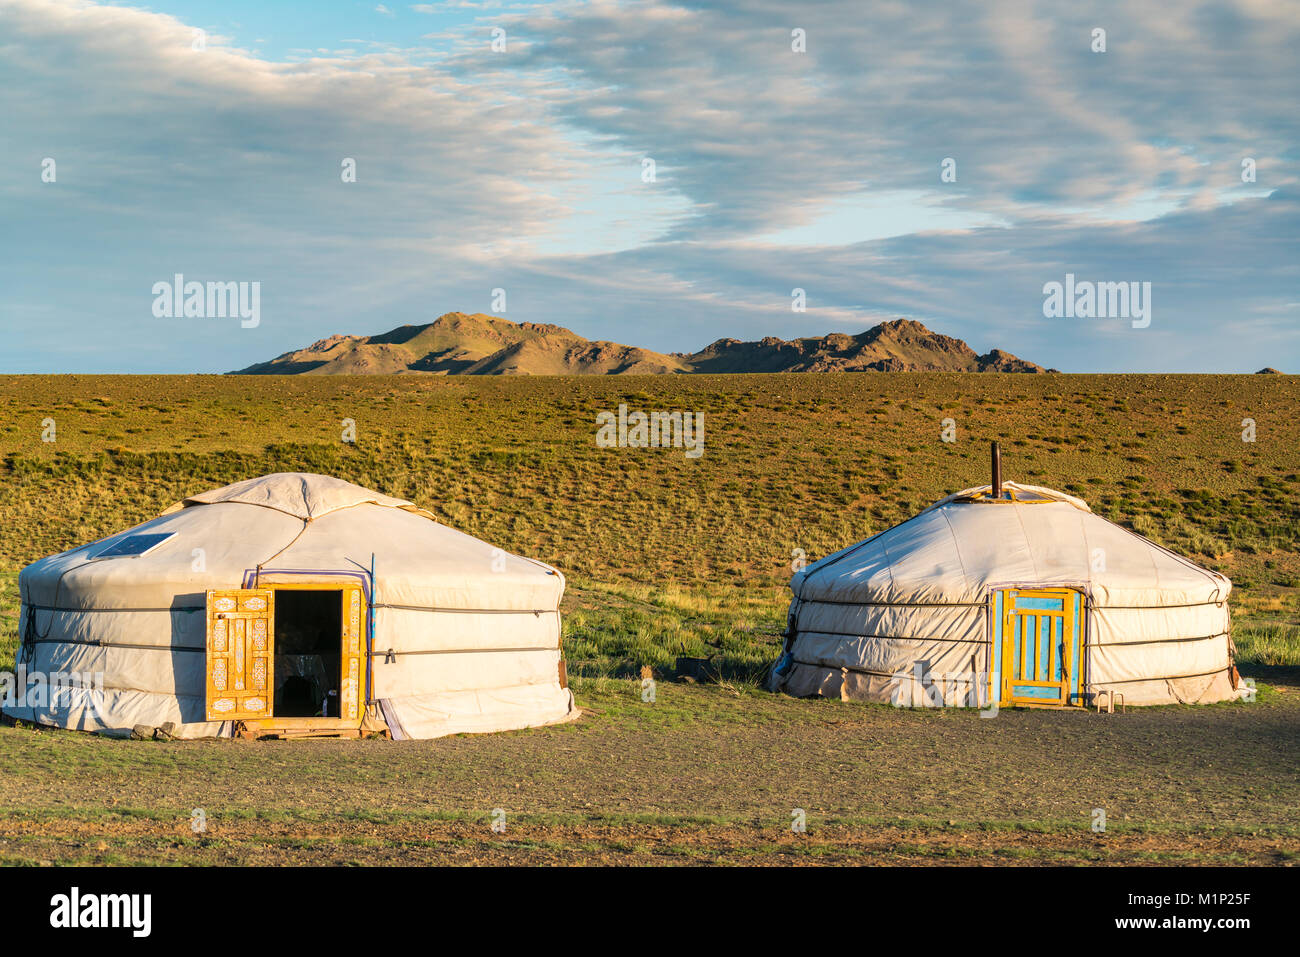 Two Mongolian nomadic gers and mountains in the background, Bayandalai district, South Gobi province, Mongolia, - Stock Image